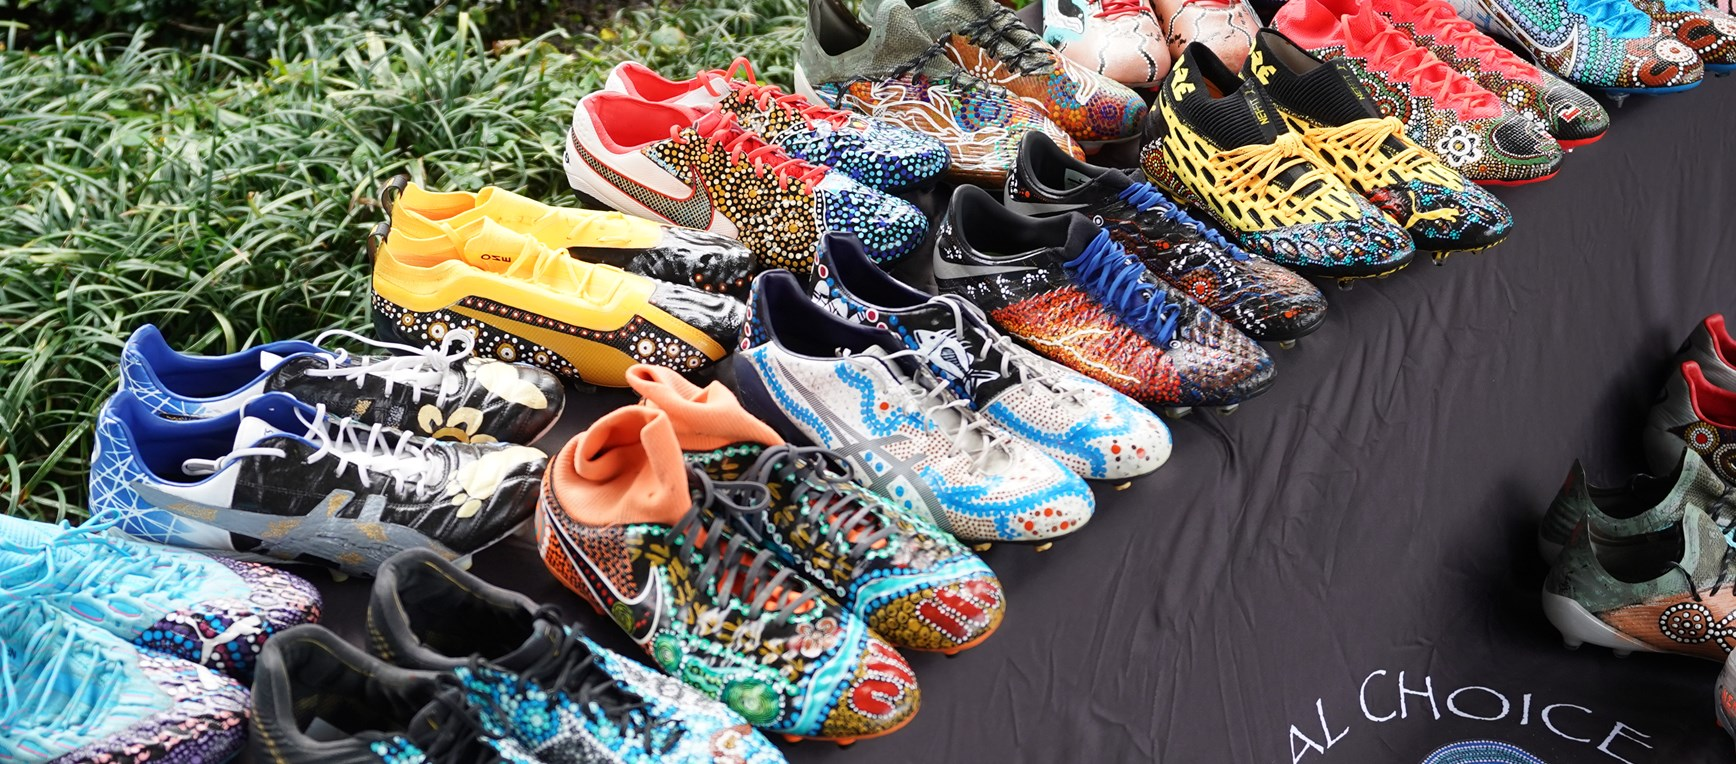 Revealed: Boots players will wear for Indigenous Round